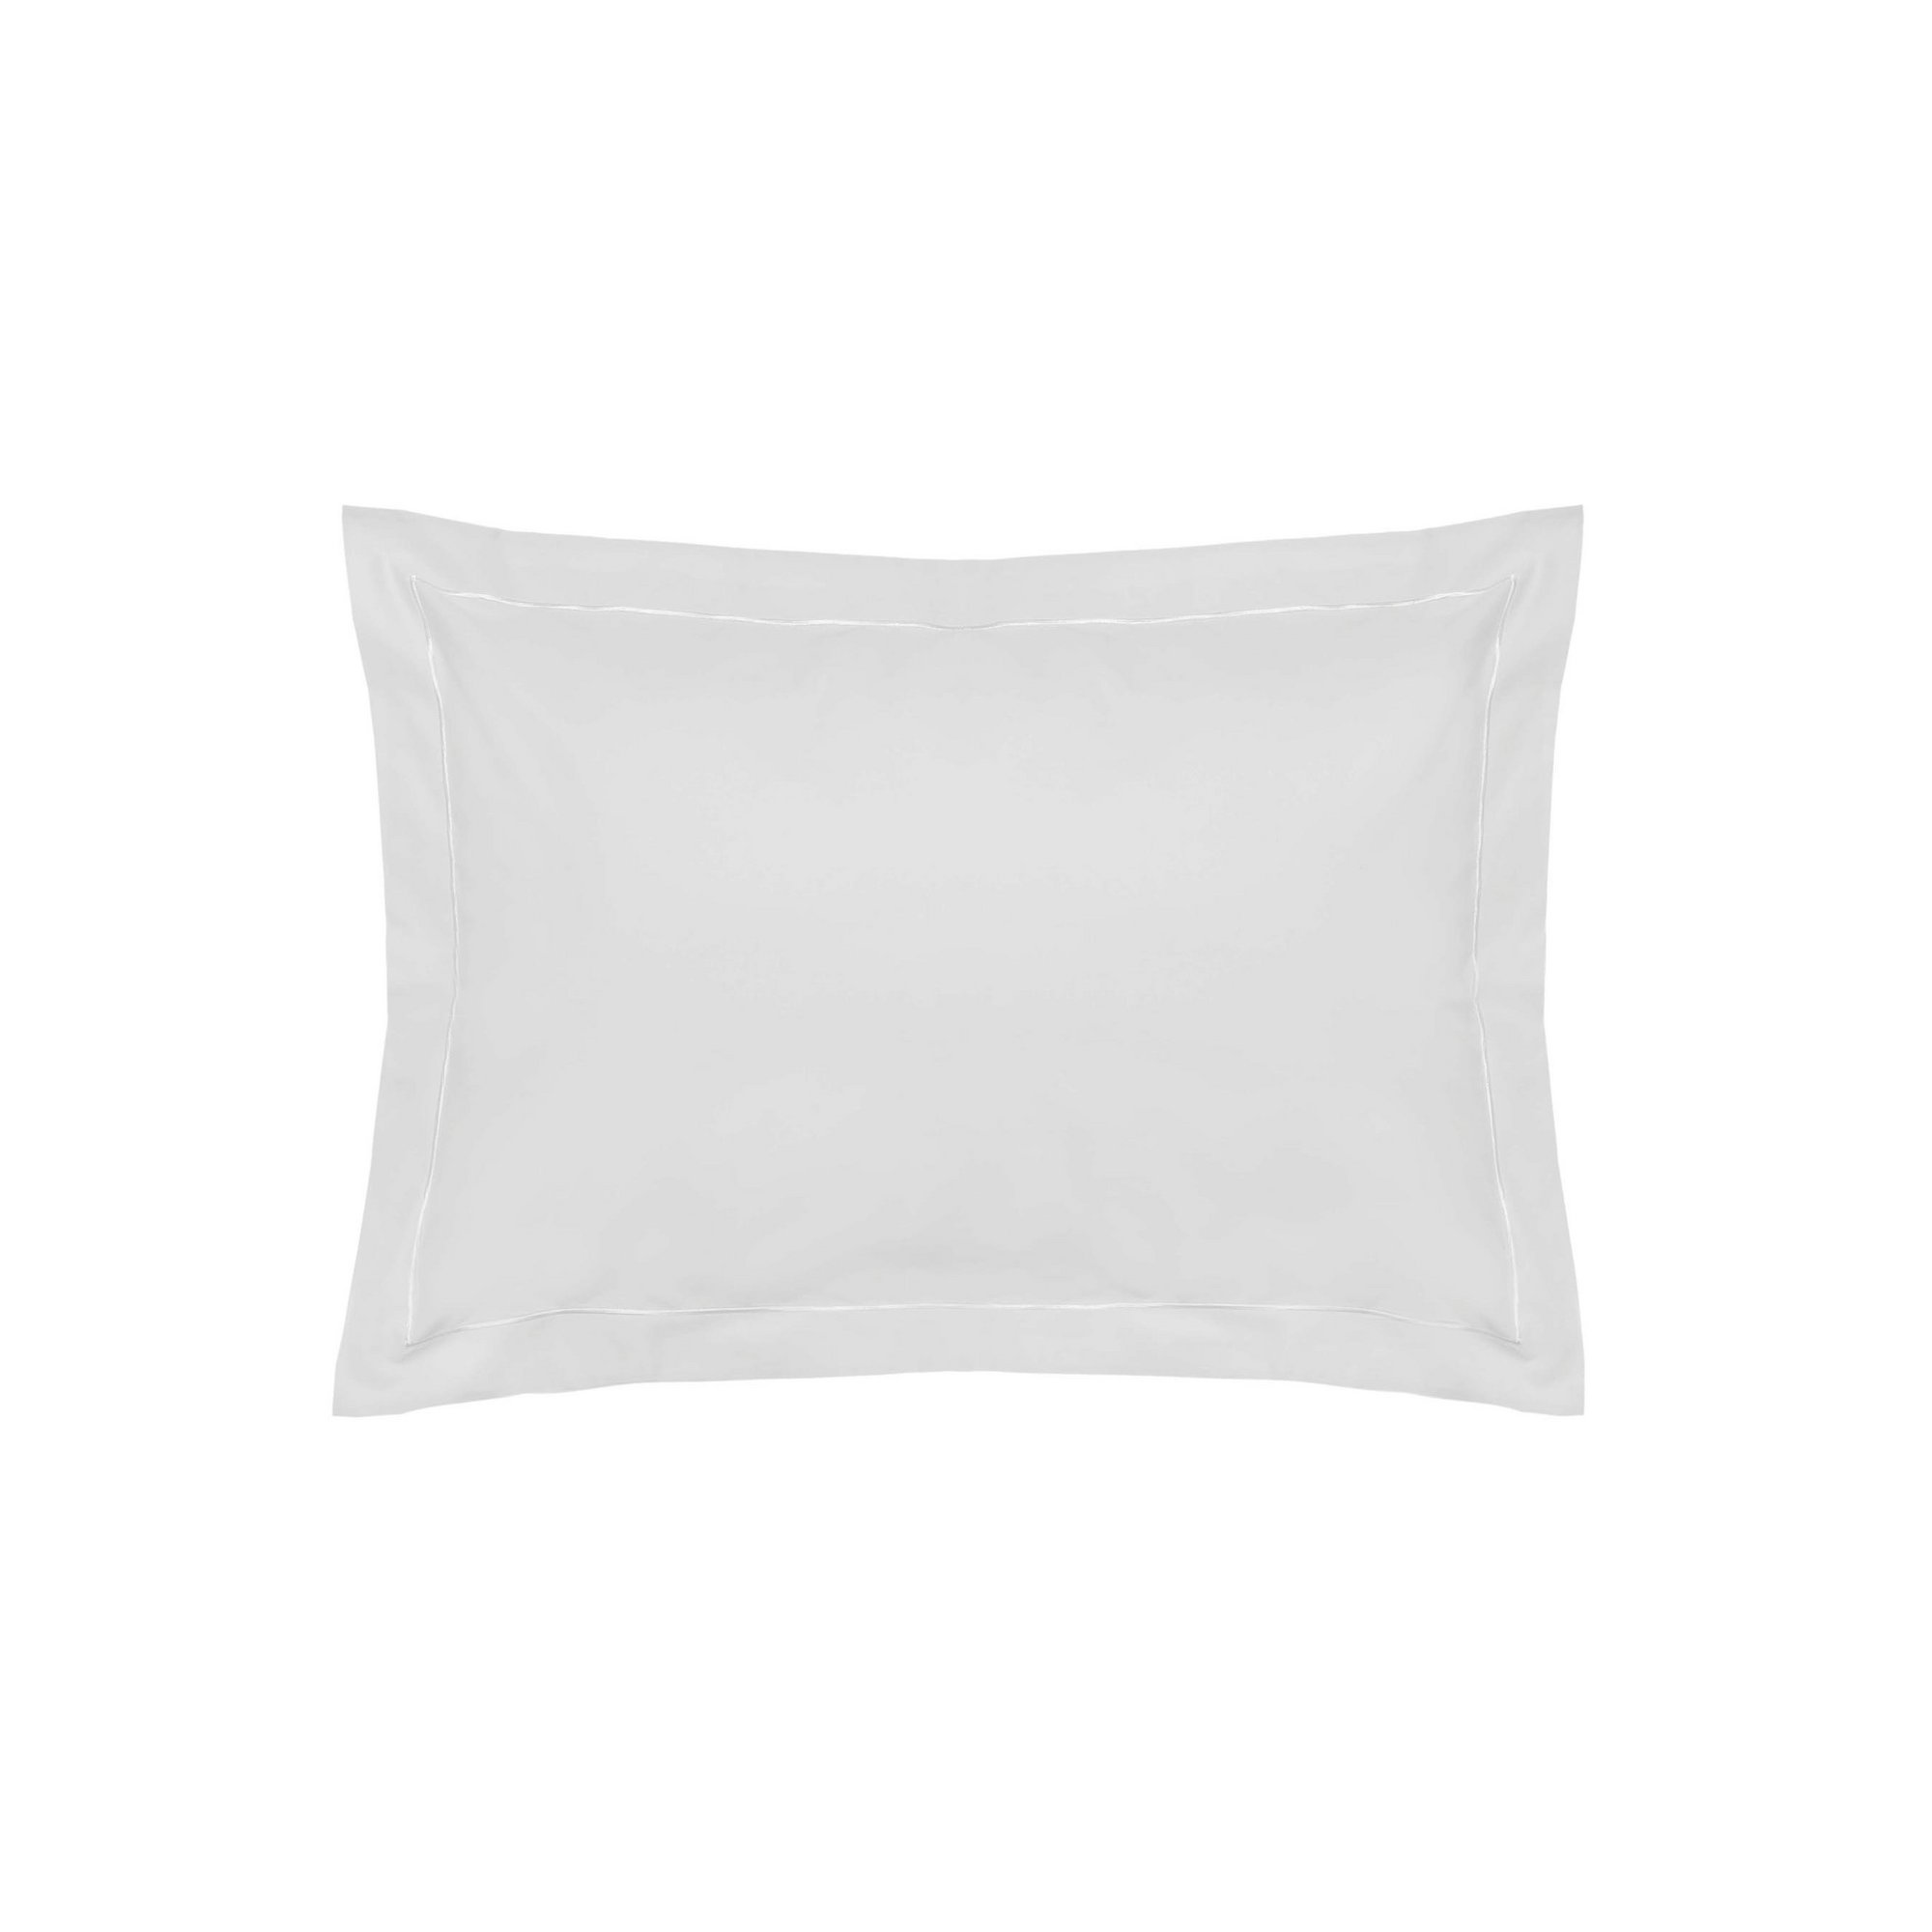 Image of 200 Count Percale Oxford Pillowcases